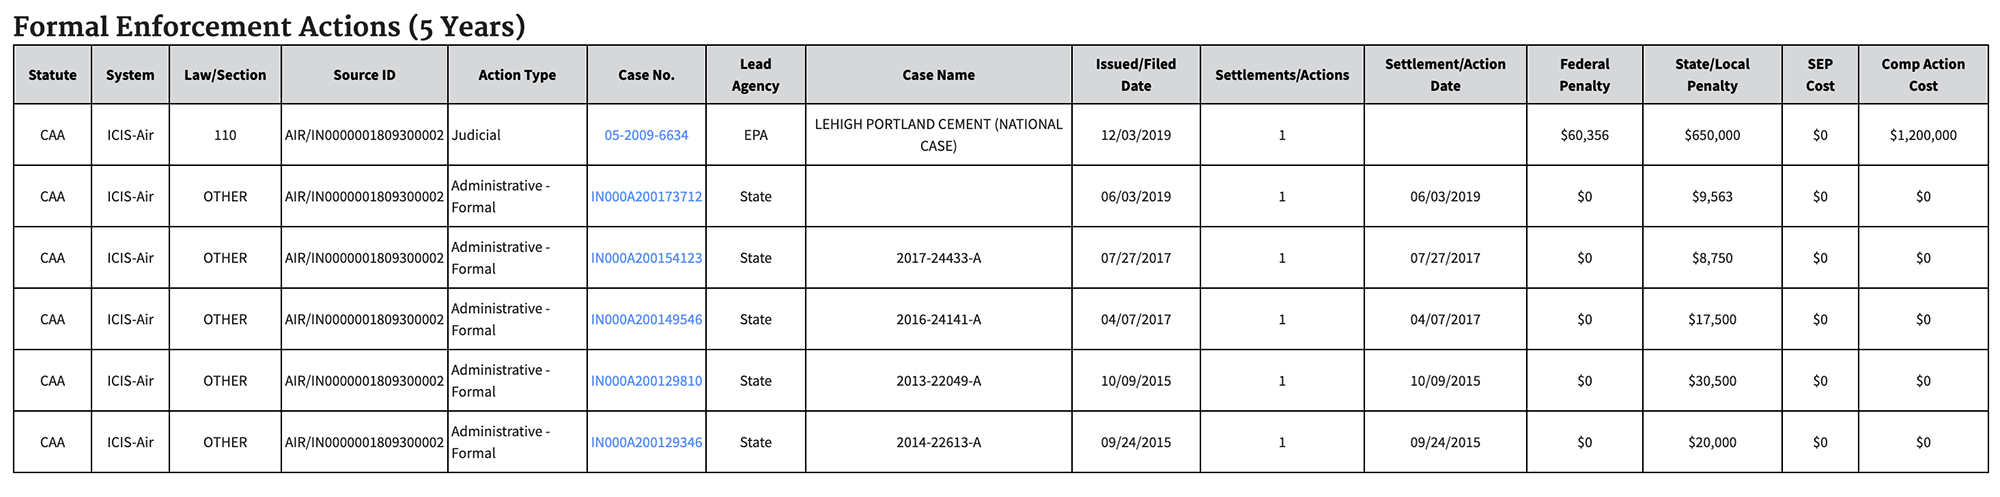 Image of state and federal enforcement actions.